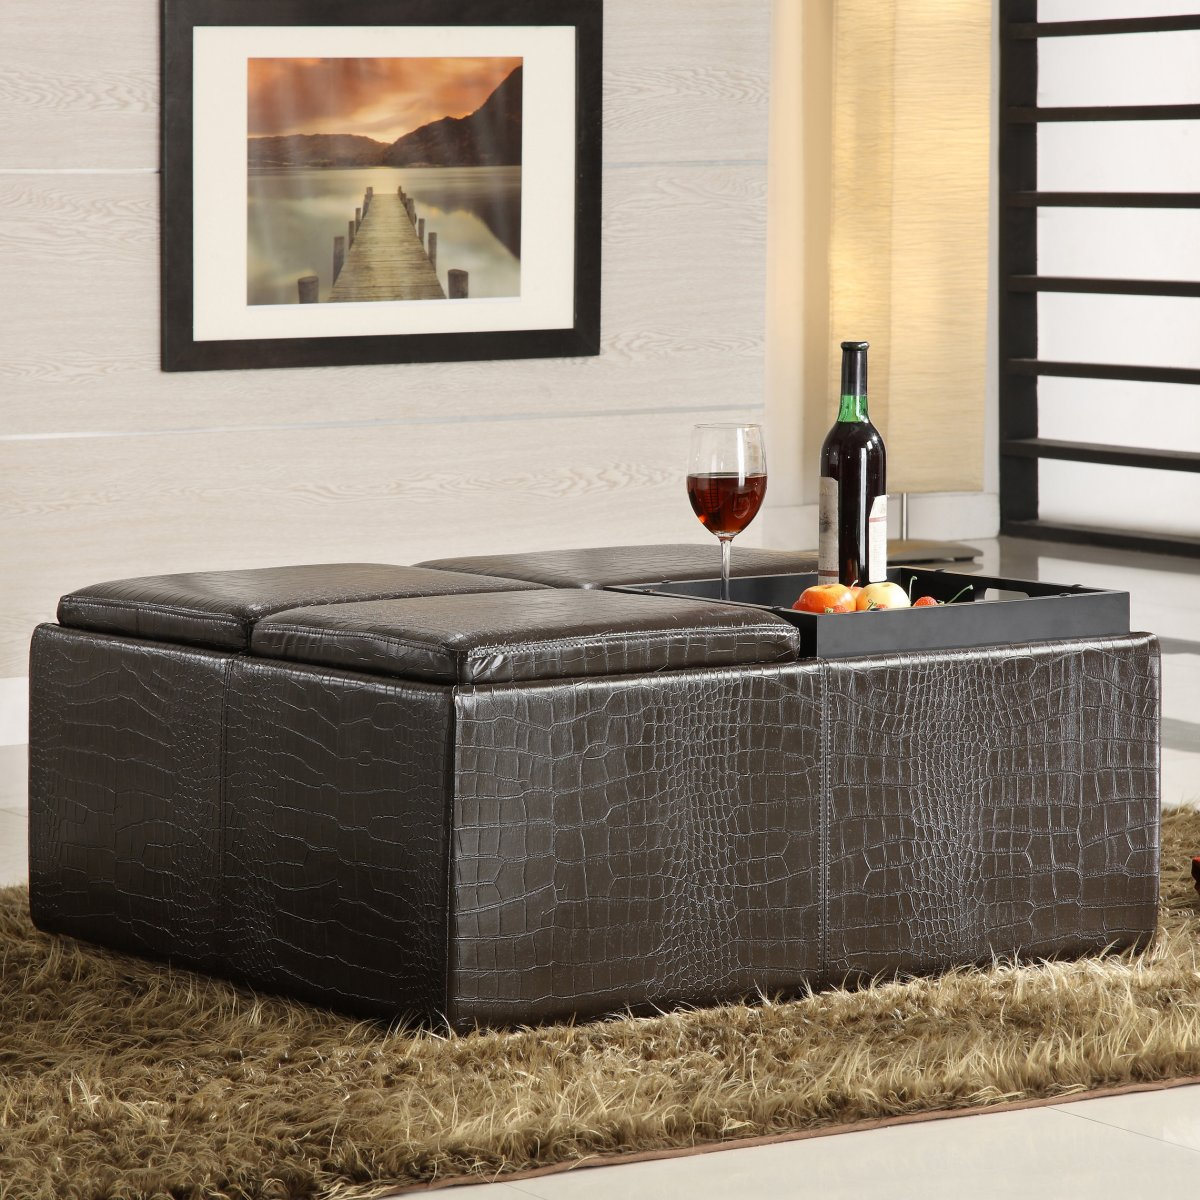 Astounding Large Square Storage Ottoman Homesfeed Machost Co Dining Chair Design Ideas Machostcouk